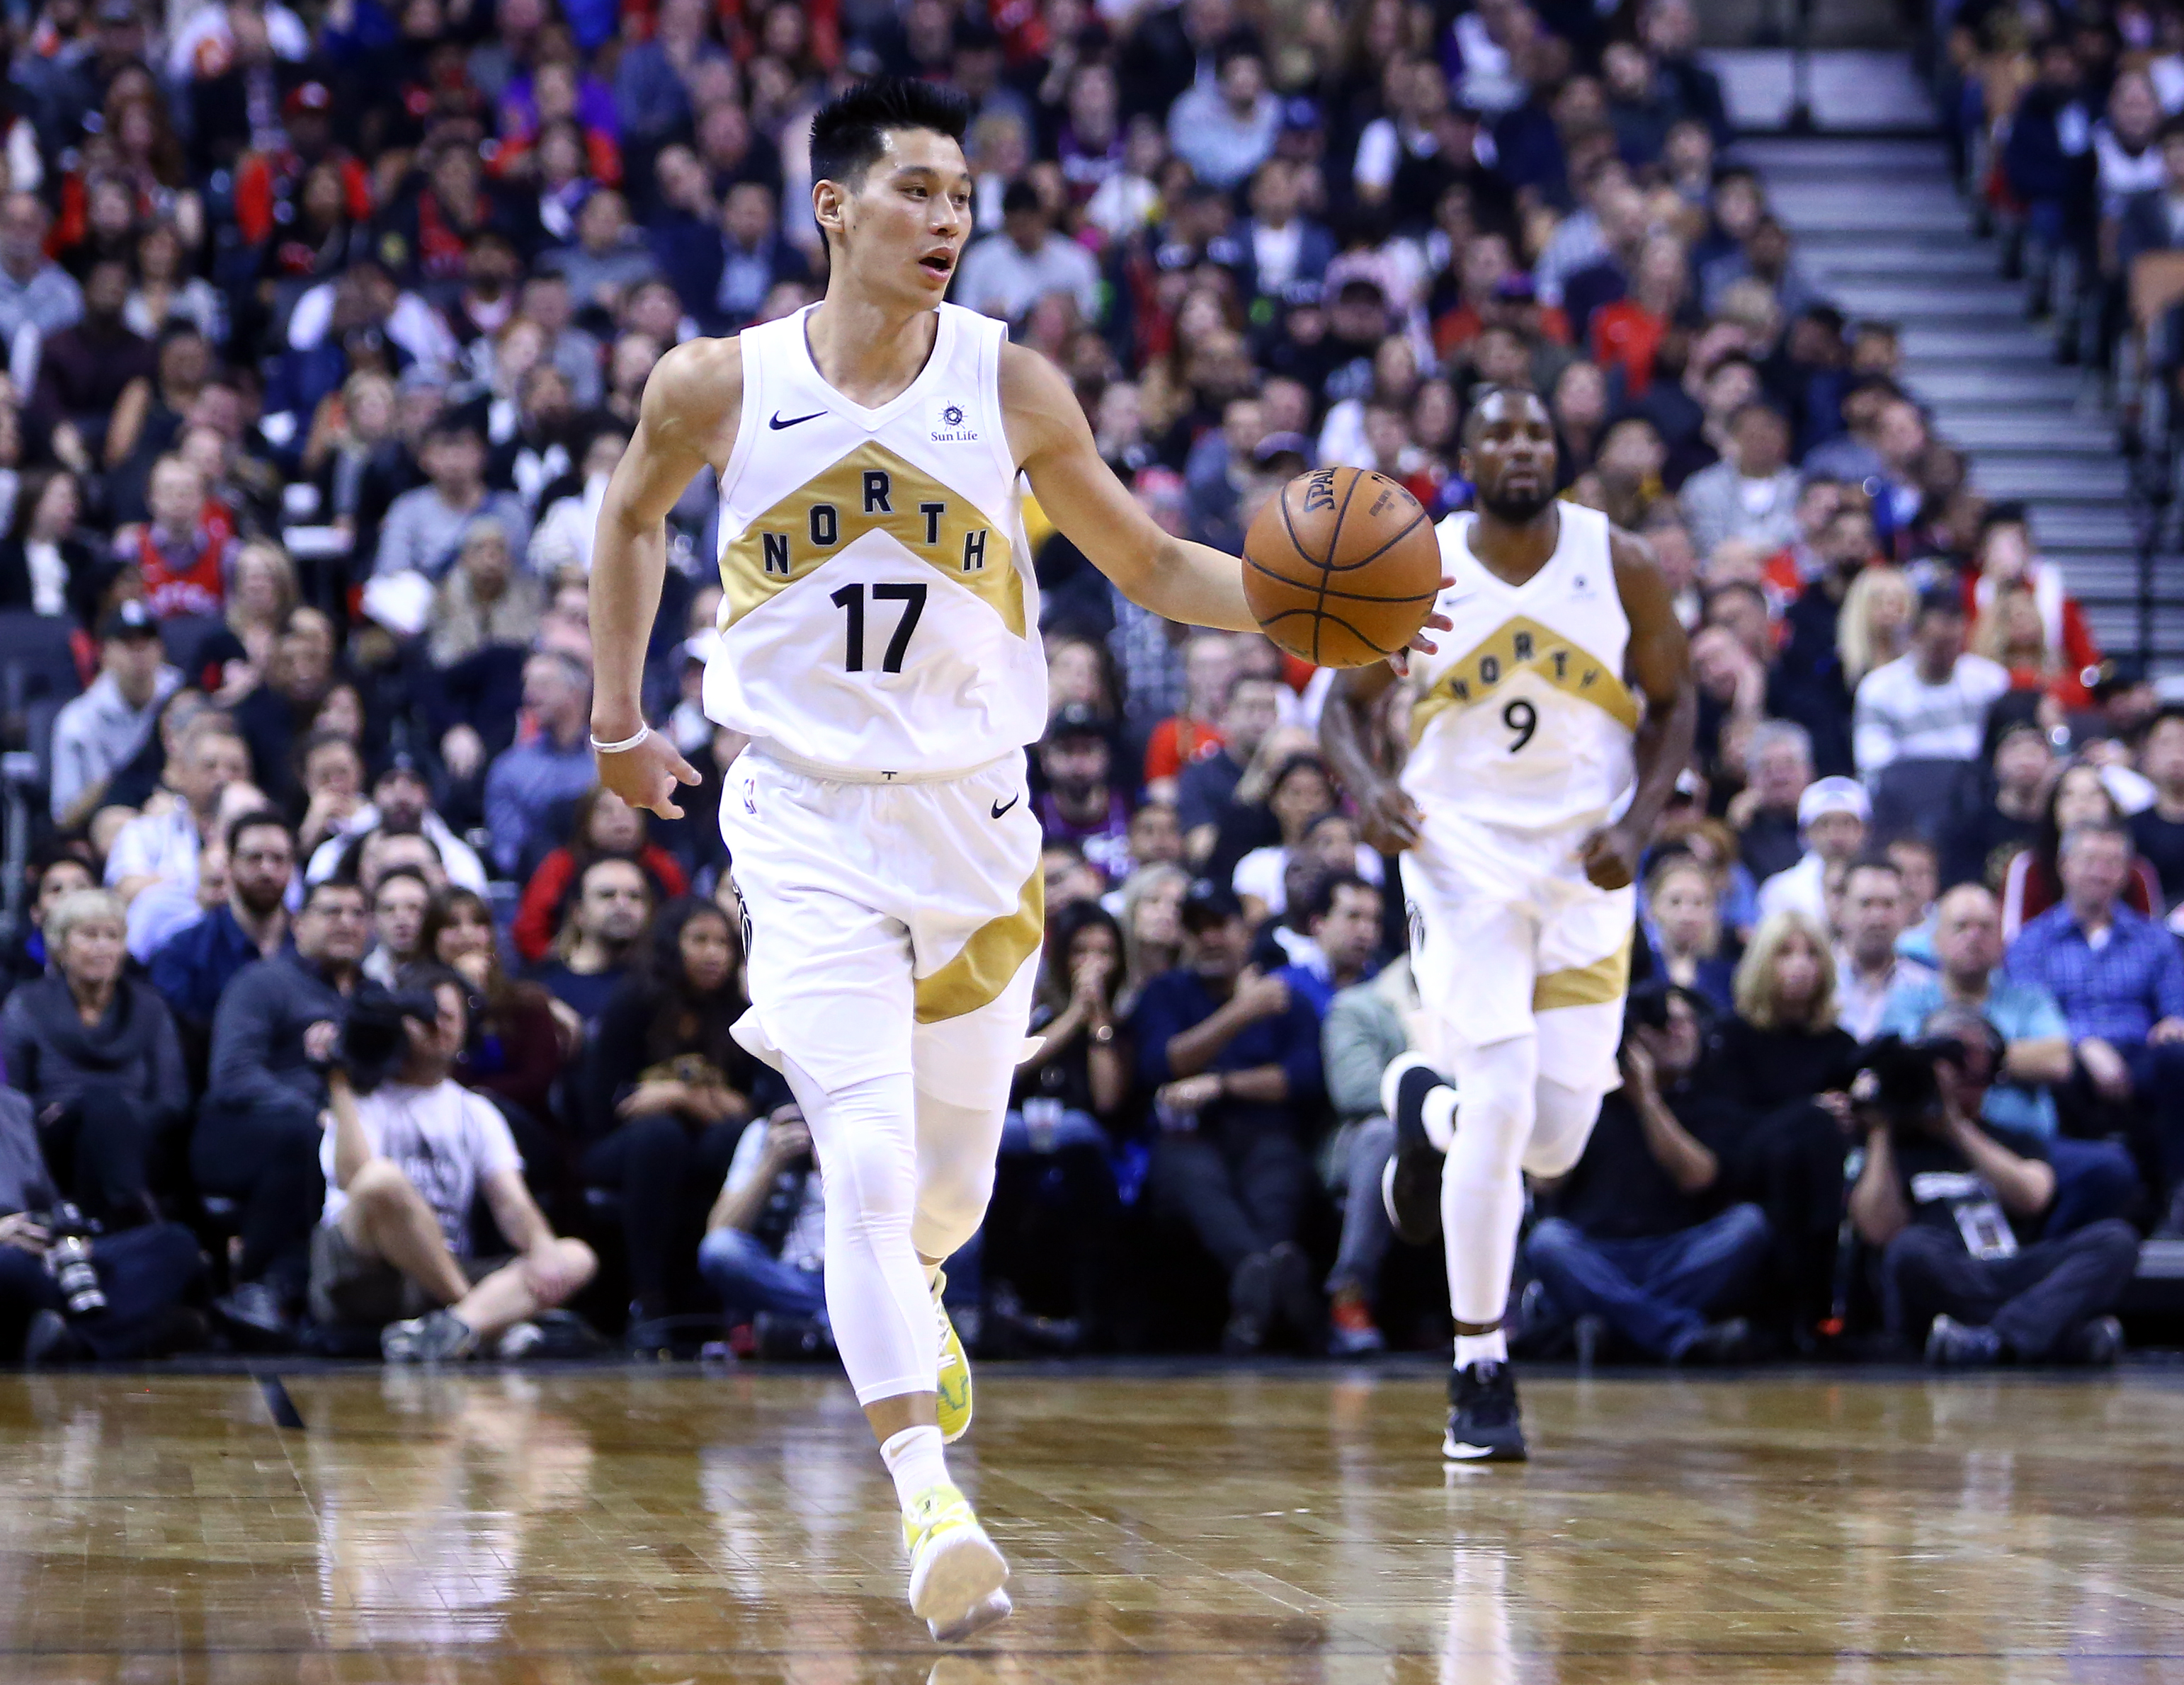 While Yao Ming and Jeremy Lin are two of the most recognizable Asian NBA players of all time, are there are Asian players in the NBA today?